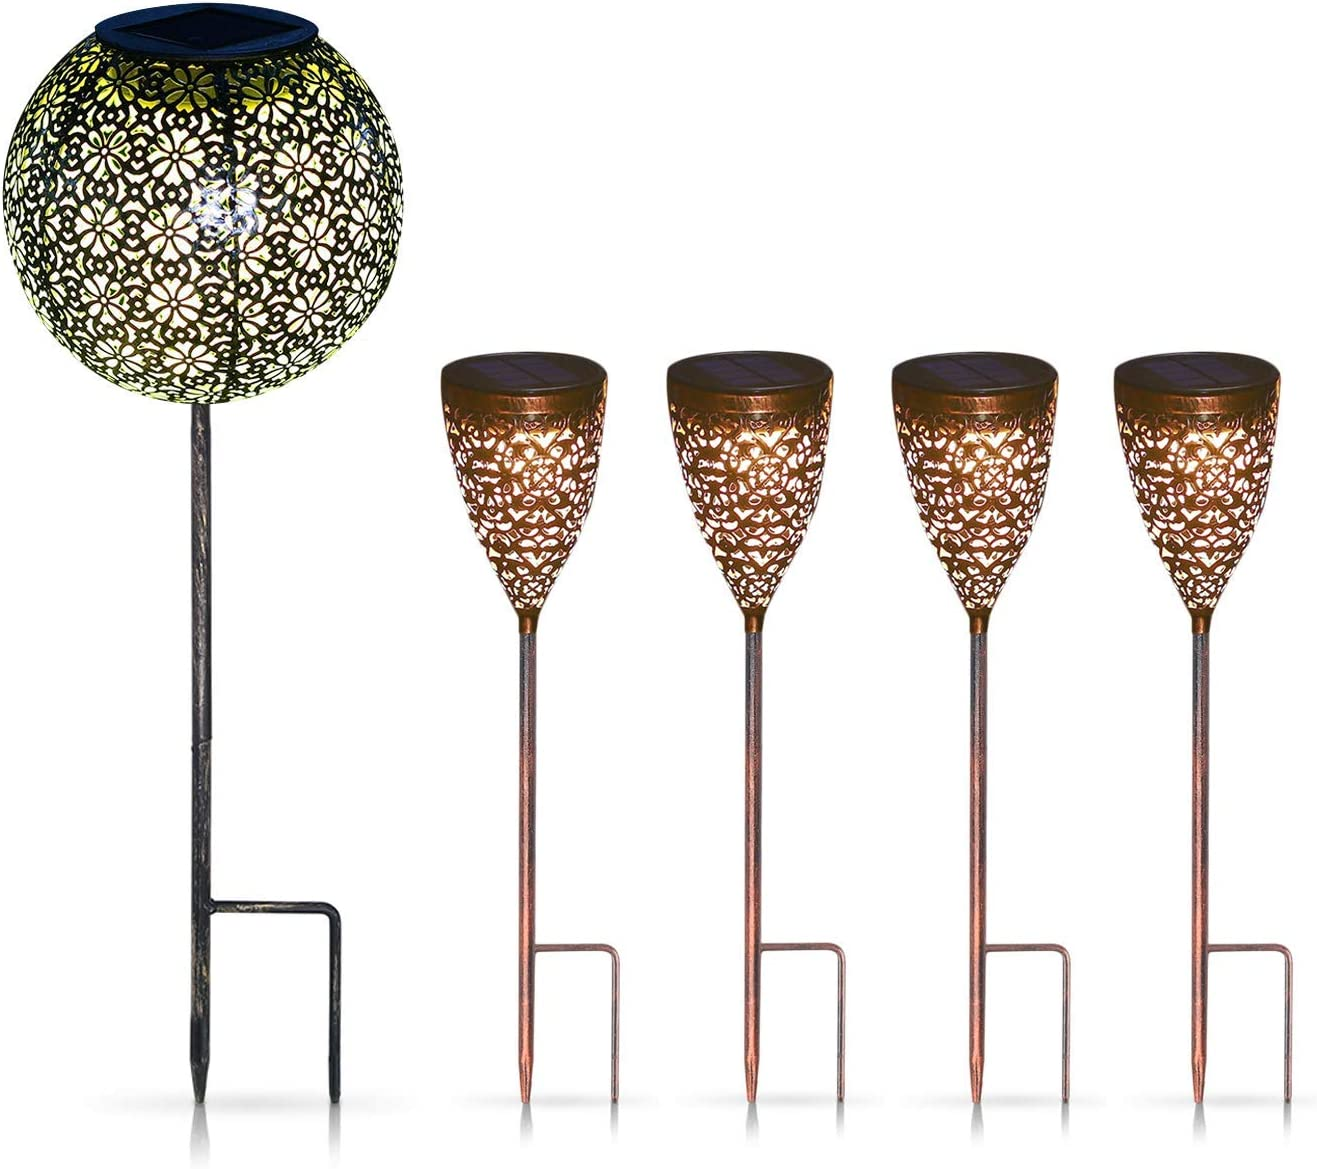 Garden Solar Lights Pathway Outdoor Solar Stakes Lights, Waterproof Decorative Metal Lights for Yard, Lawn, Patio, Courtyard